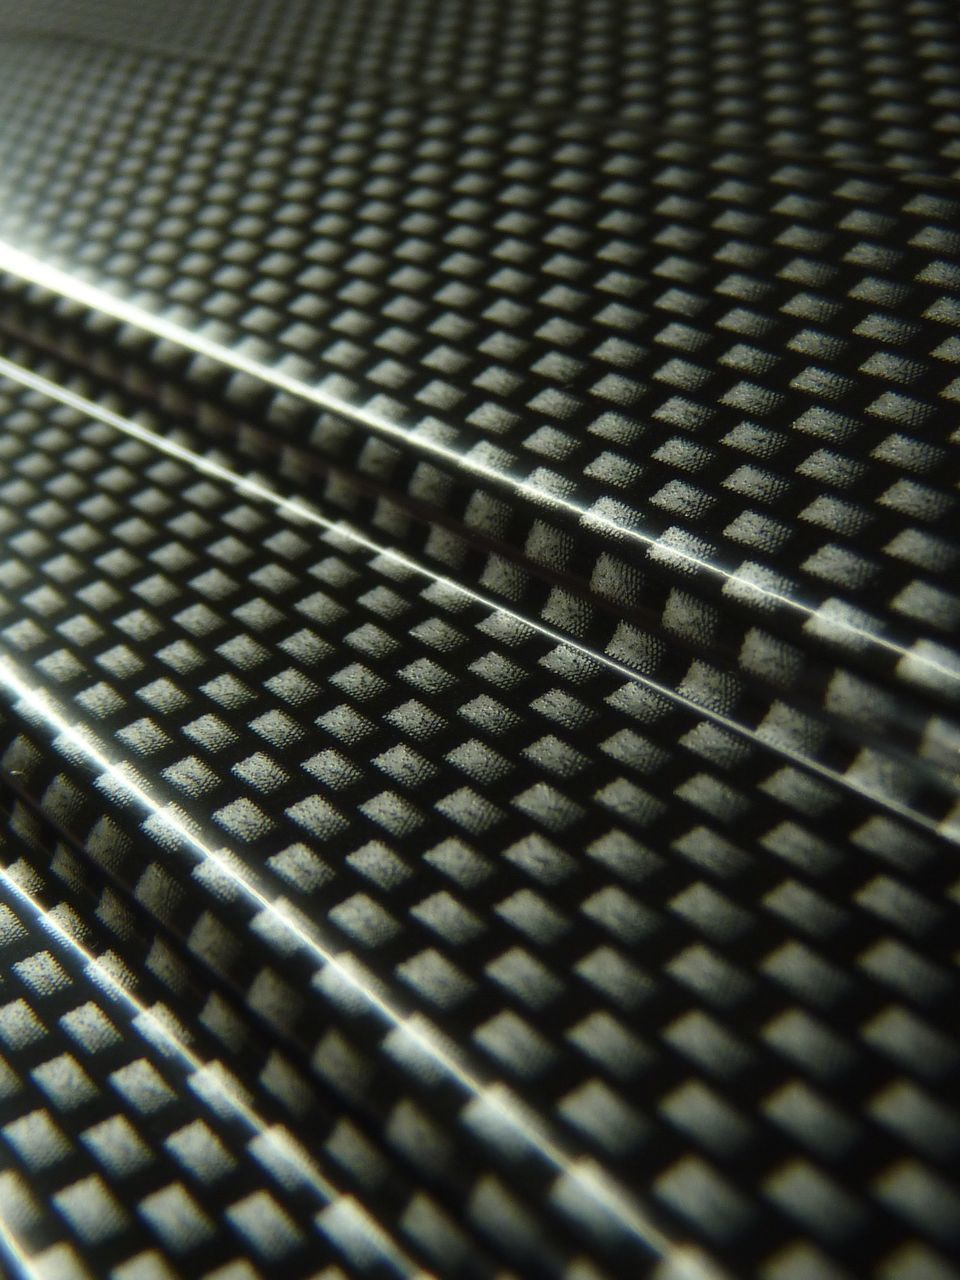 pattern, backgrounds, indoors, full frame, metal, selective focus, no people, close-up, textured, sound mixer, steel, metal grate, technology, day